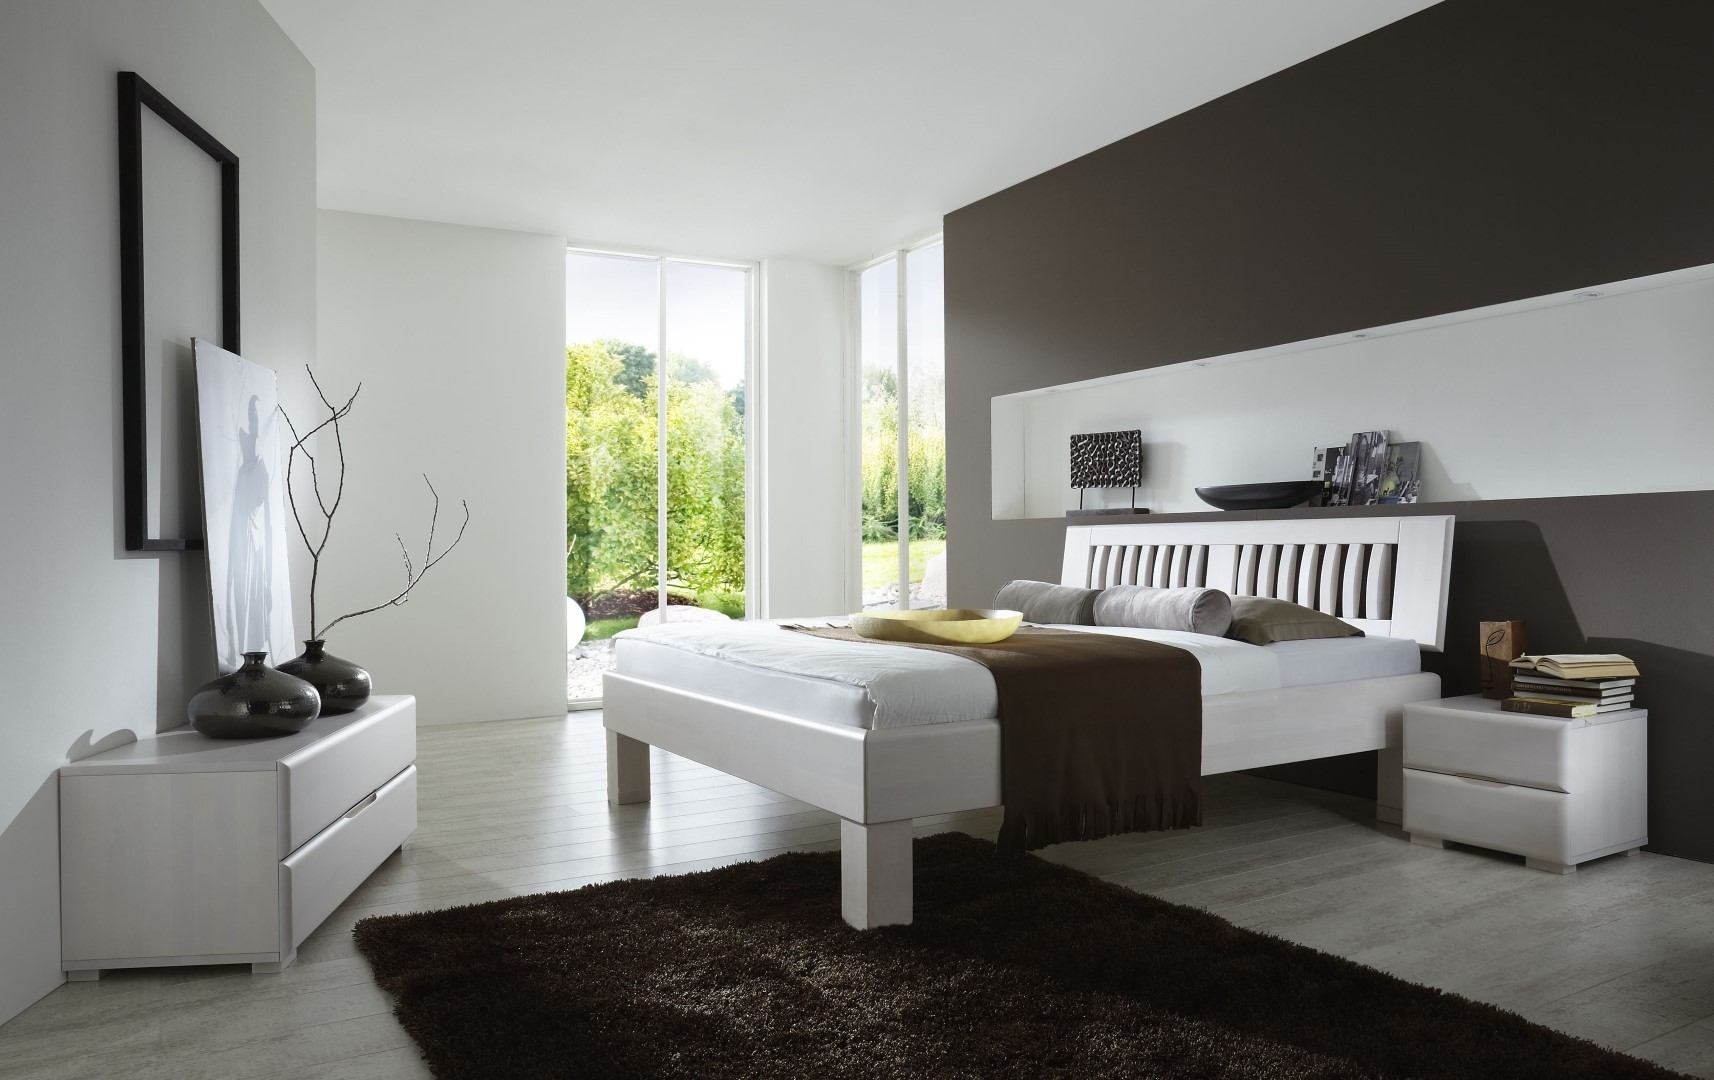 dico avantgarde leeds ledikant de bedweters. Black Bedroom Furniture Sets. Home Design Ideas